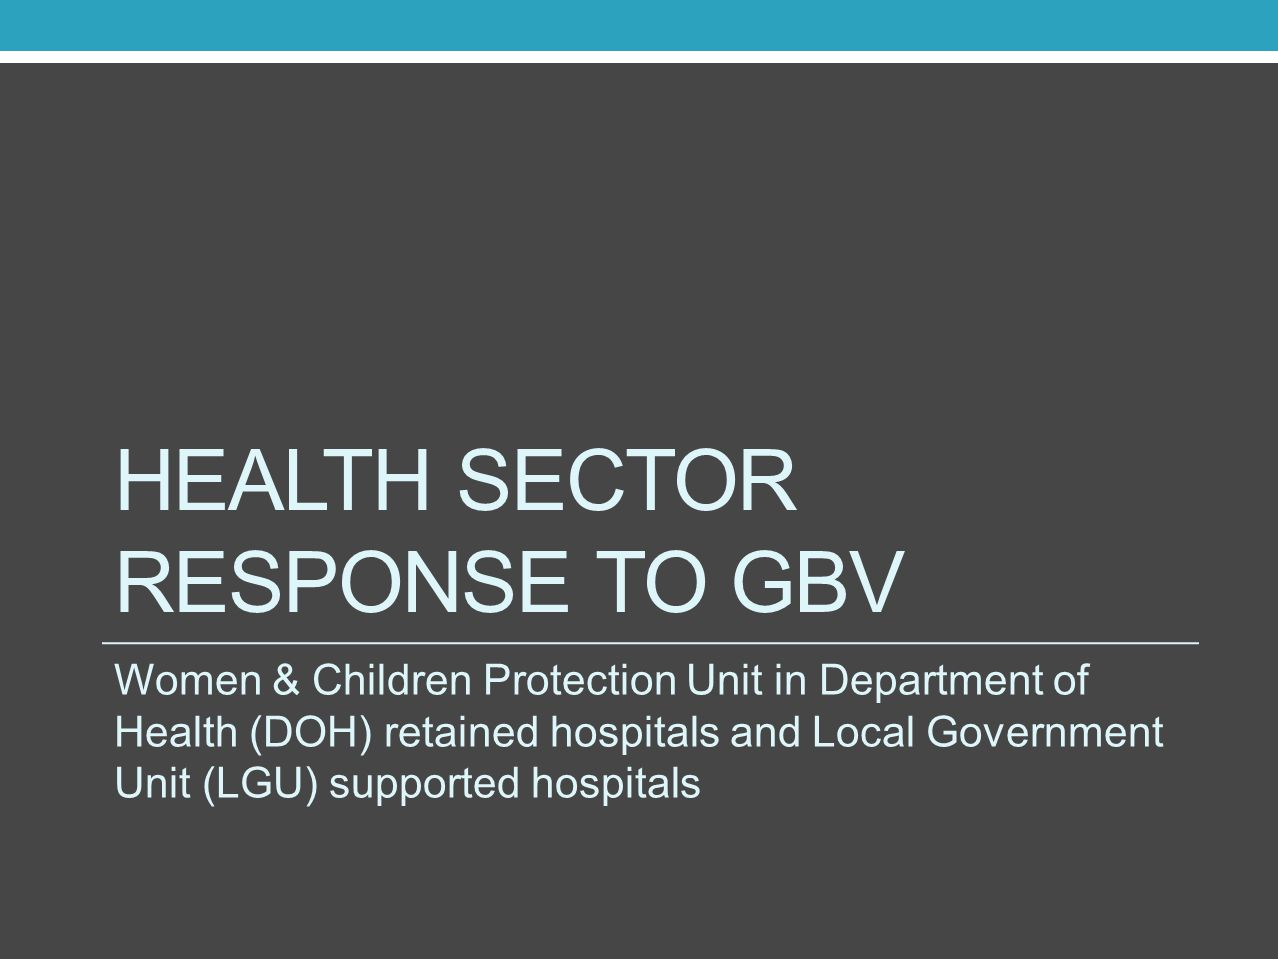 HEALTH SECTOR RESPONSE TO GBV Women & Children Protection Unit in Department of Health (DOH) retained hospitals and Local Government Unit (LGU) suppor